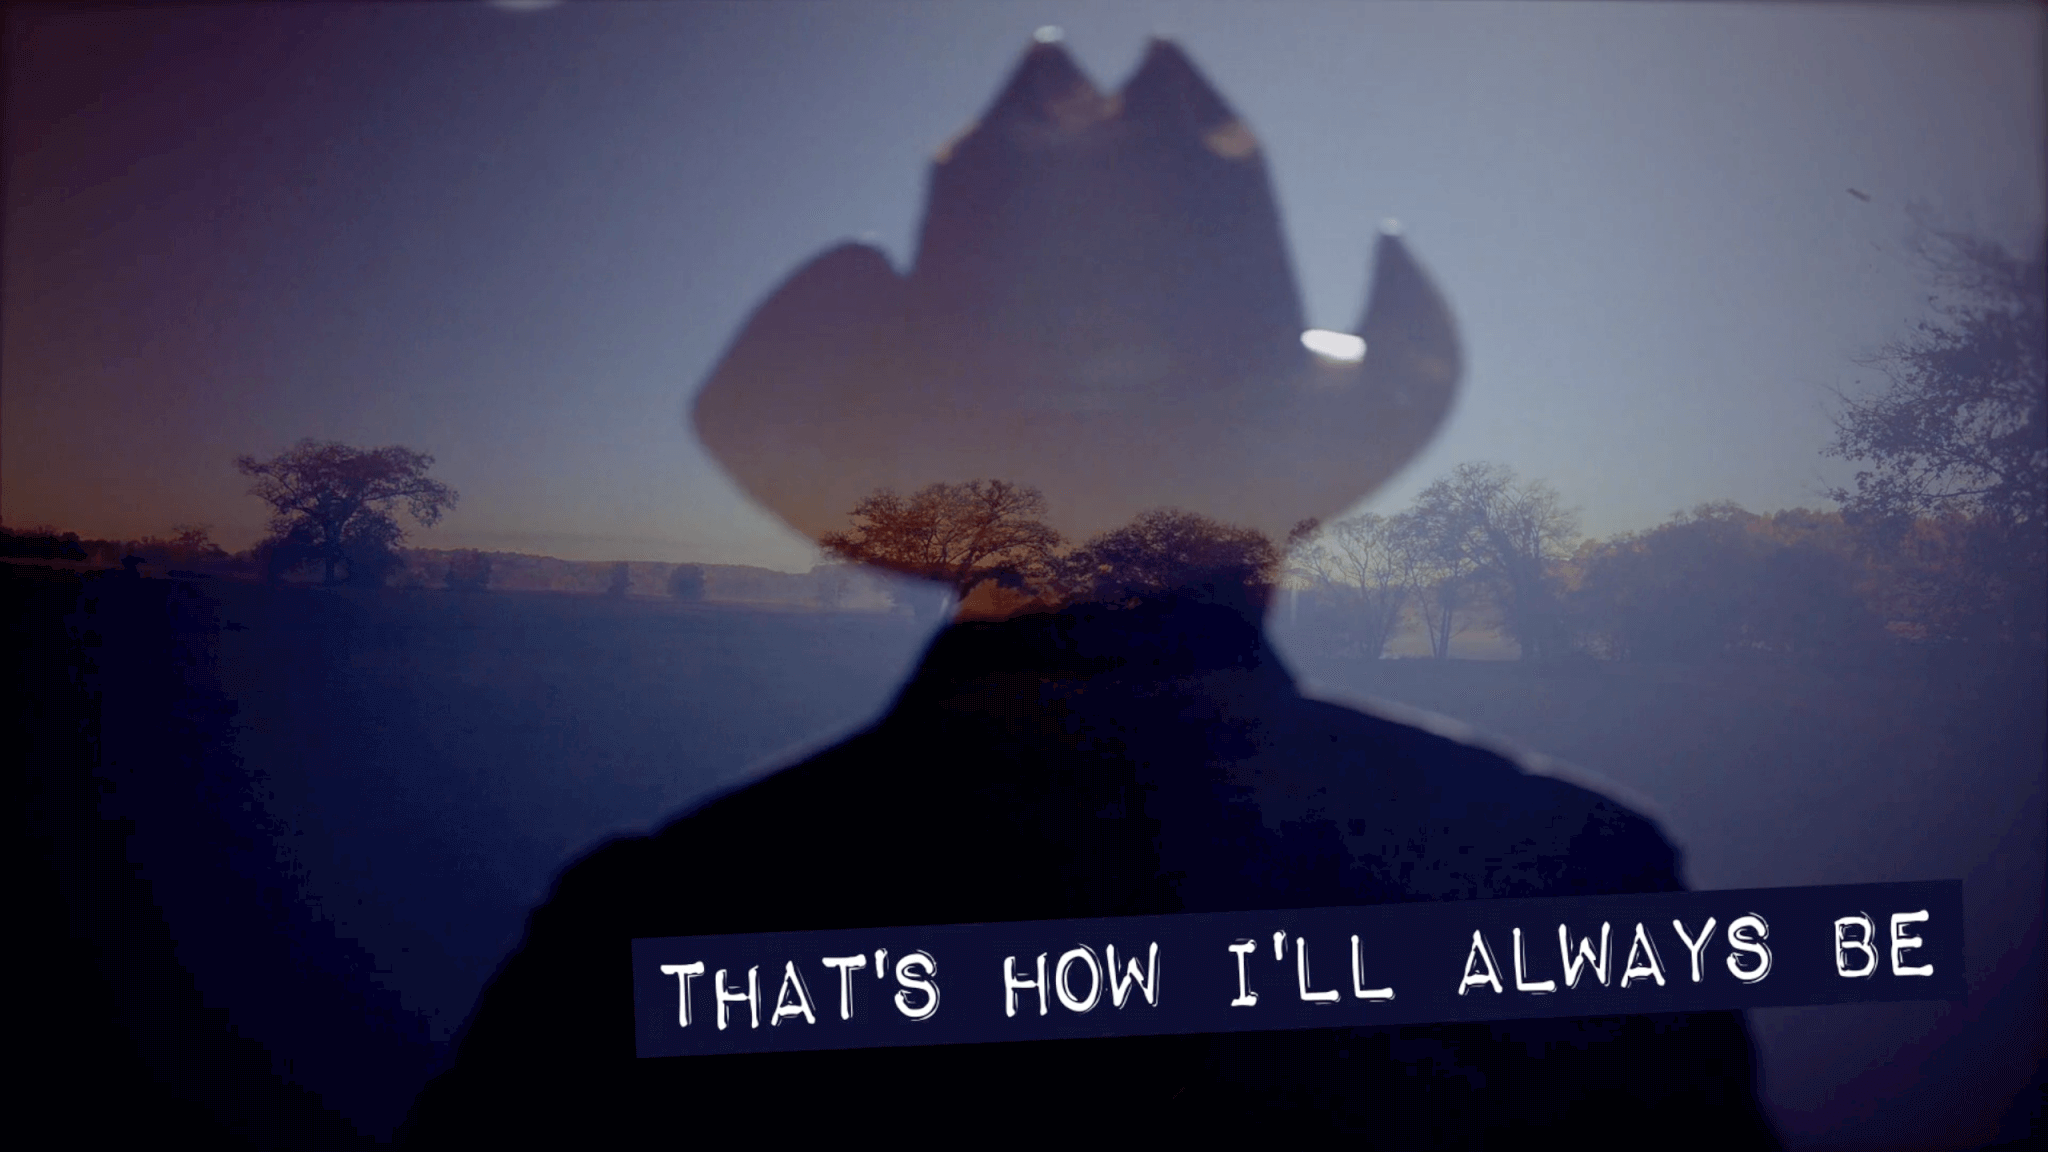 How I'll Always Be Image for Lyric Video